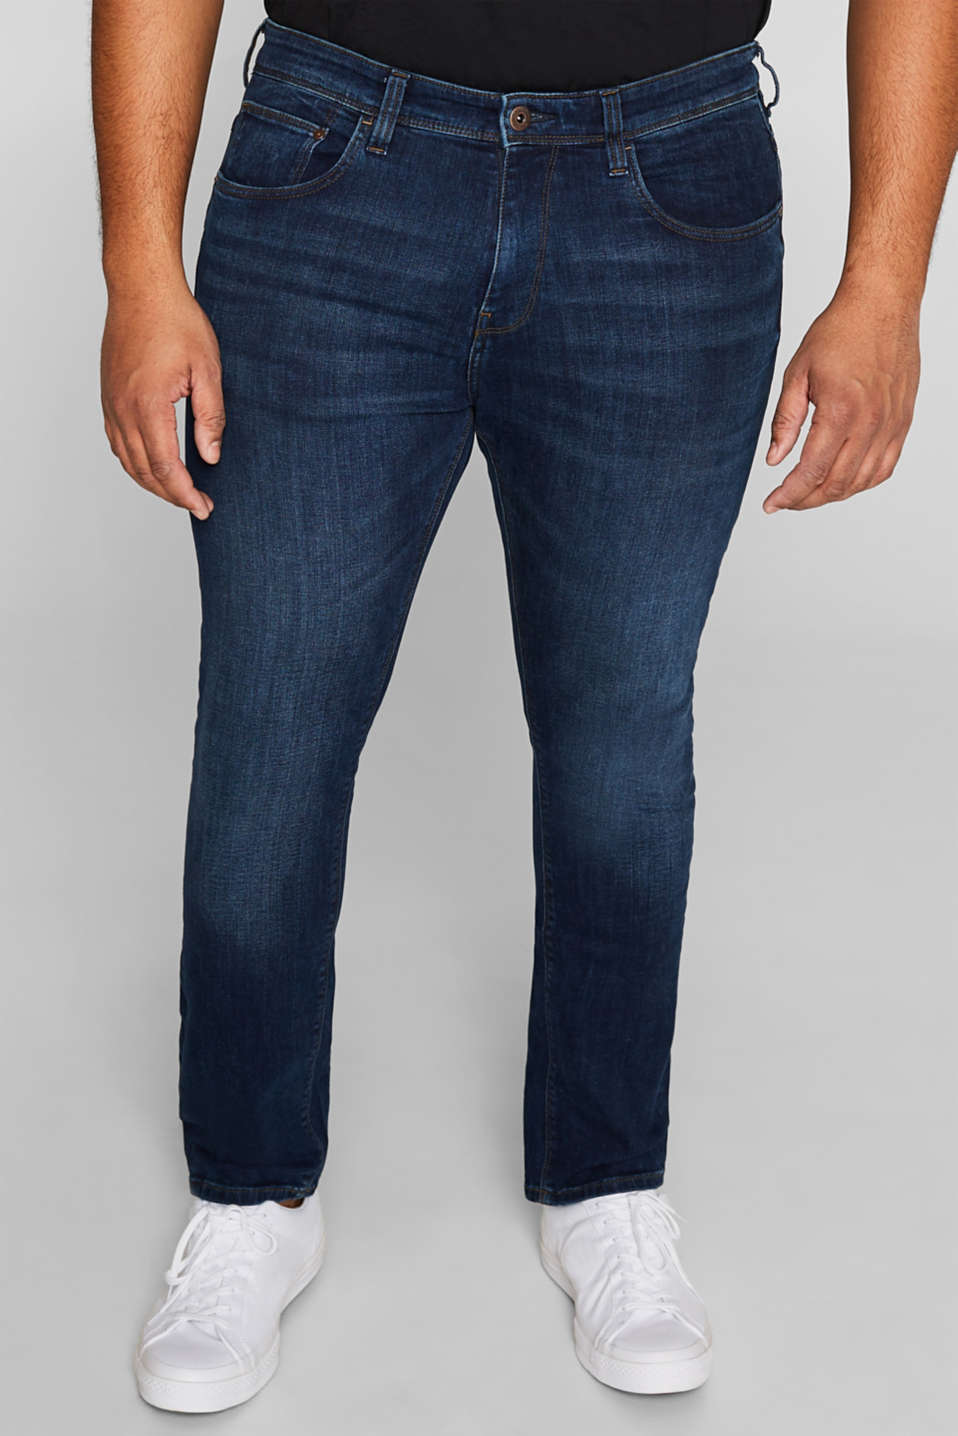 Esprit - Stretch jeans with tobacco stitching